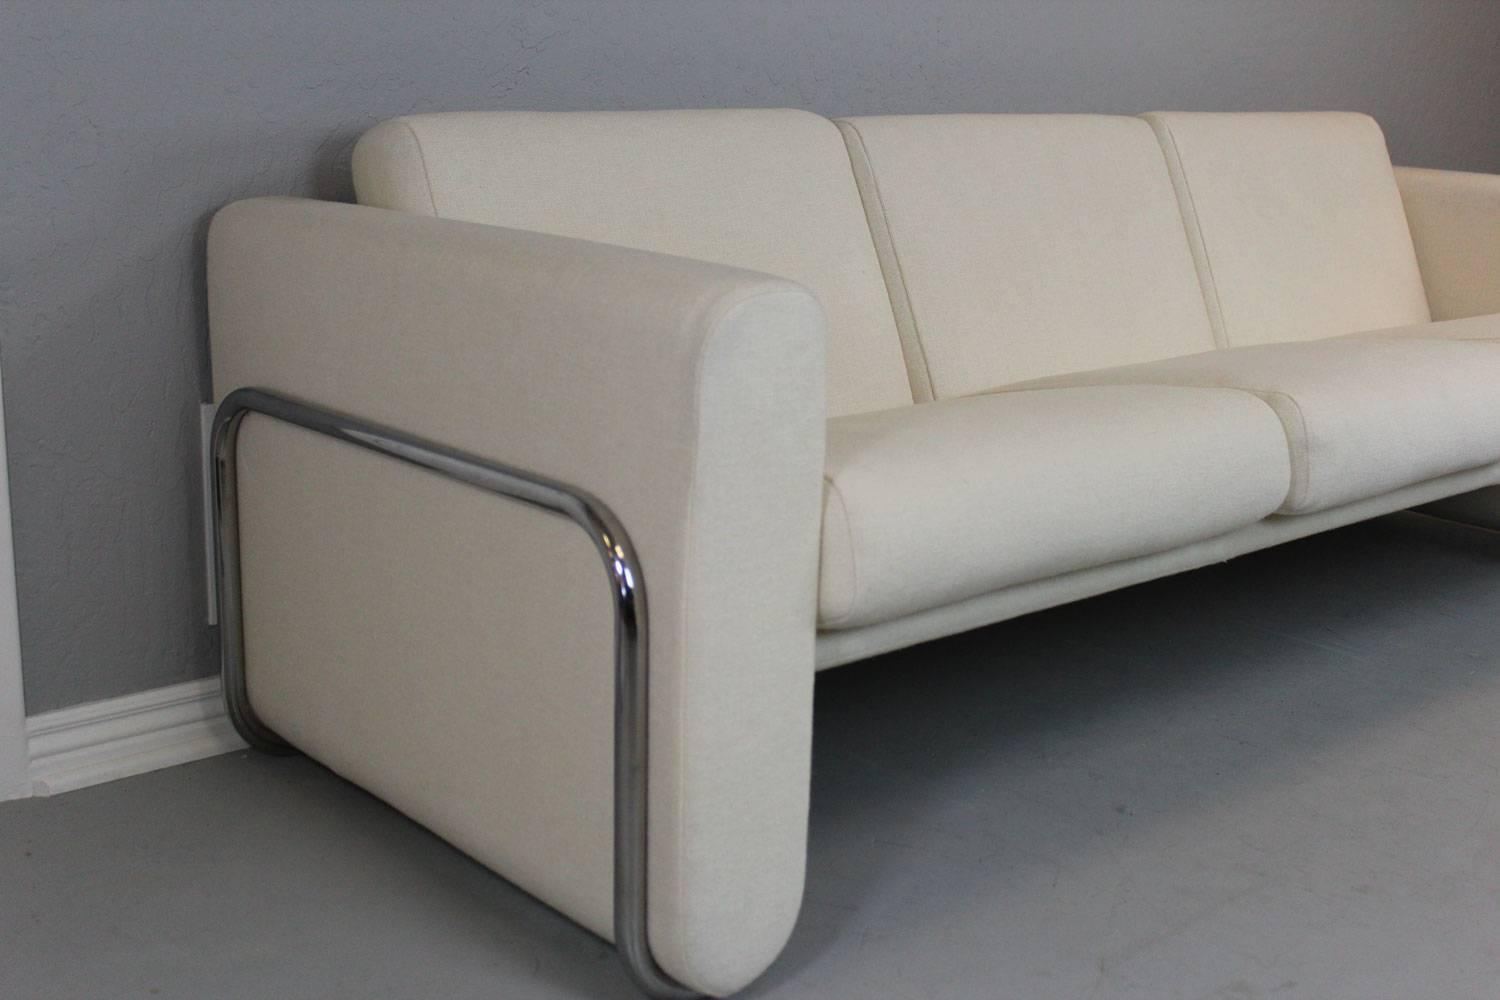 Lecorbusier style white sofa with wrap around stainless steel frame at 1stdibs Steel frame sofa